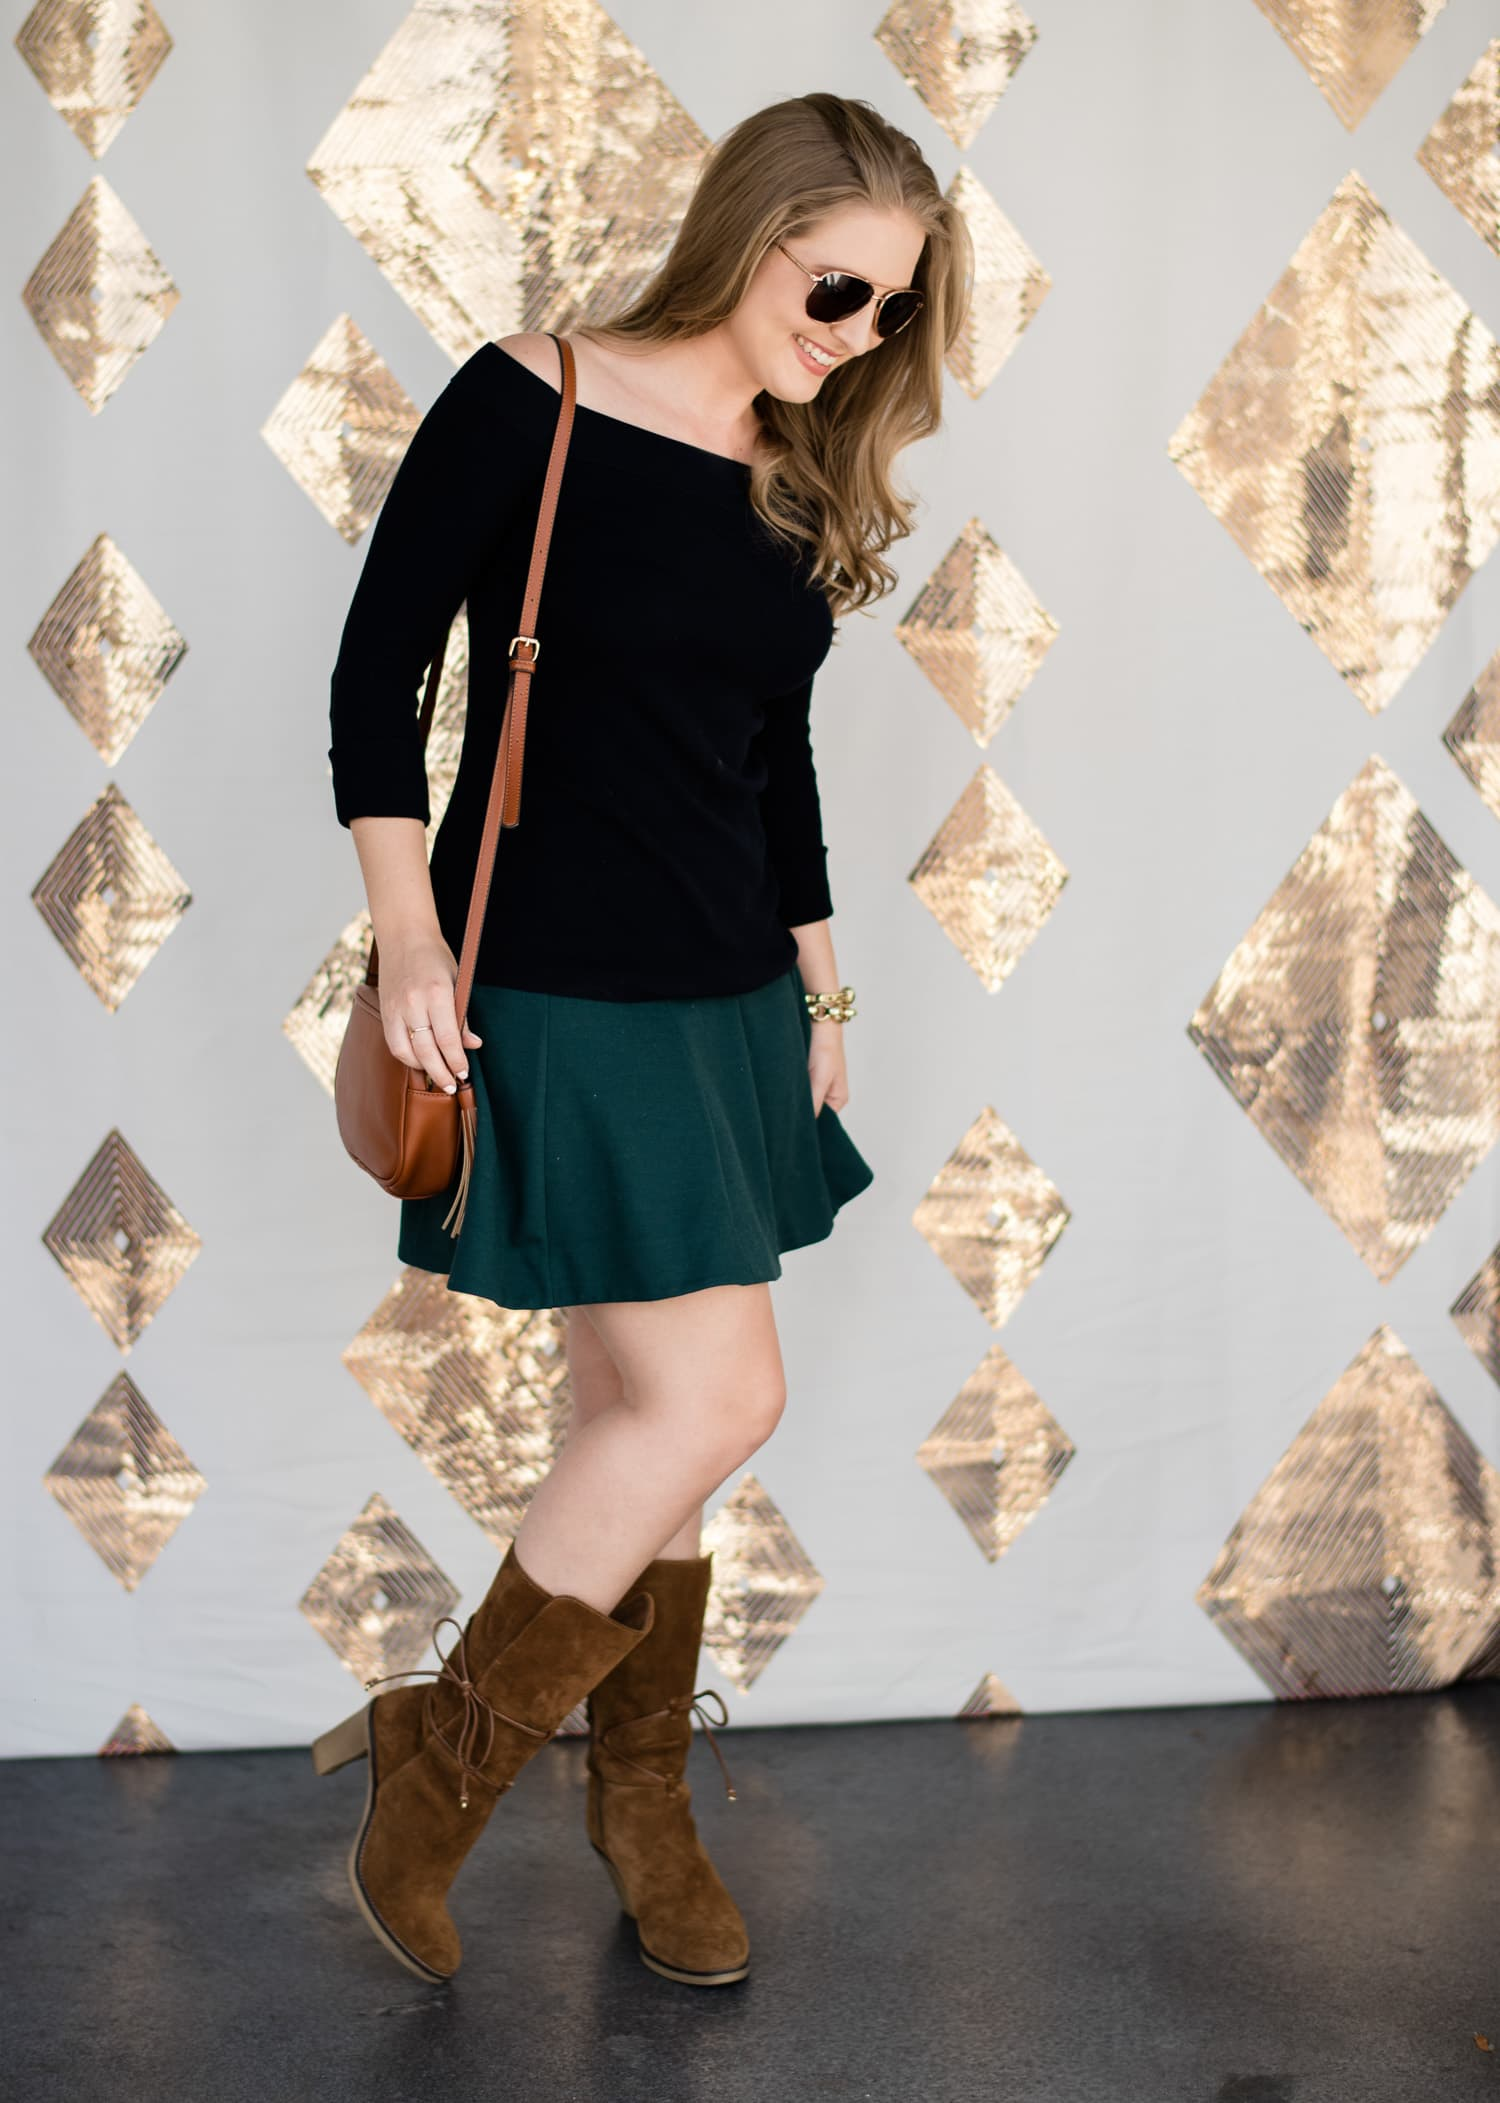 casual-fall-outfit-brown-suede-boots-foster-grant-opening-orlando-3270-2